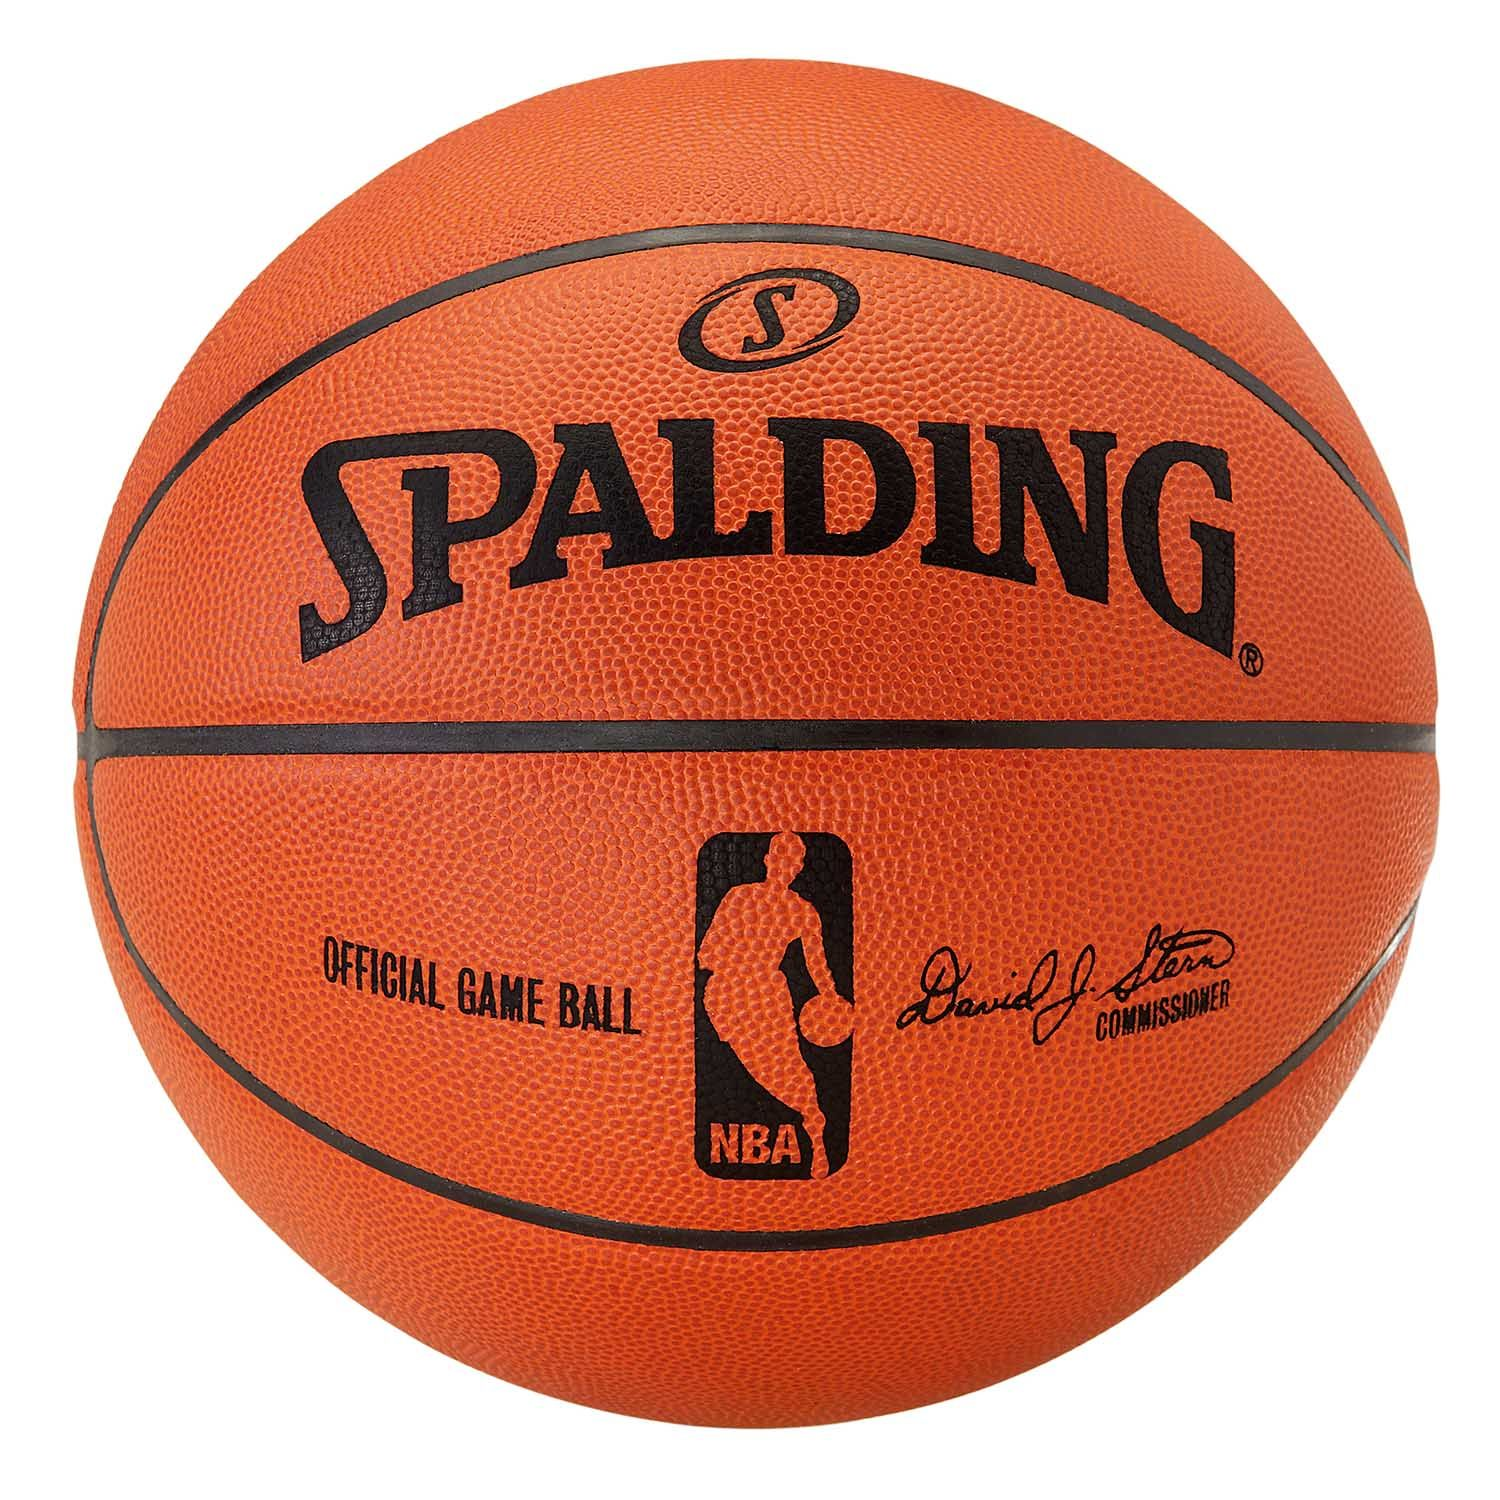 Pin spalding nba basketball on pinterest